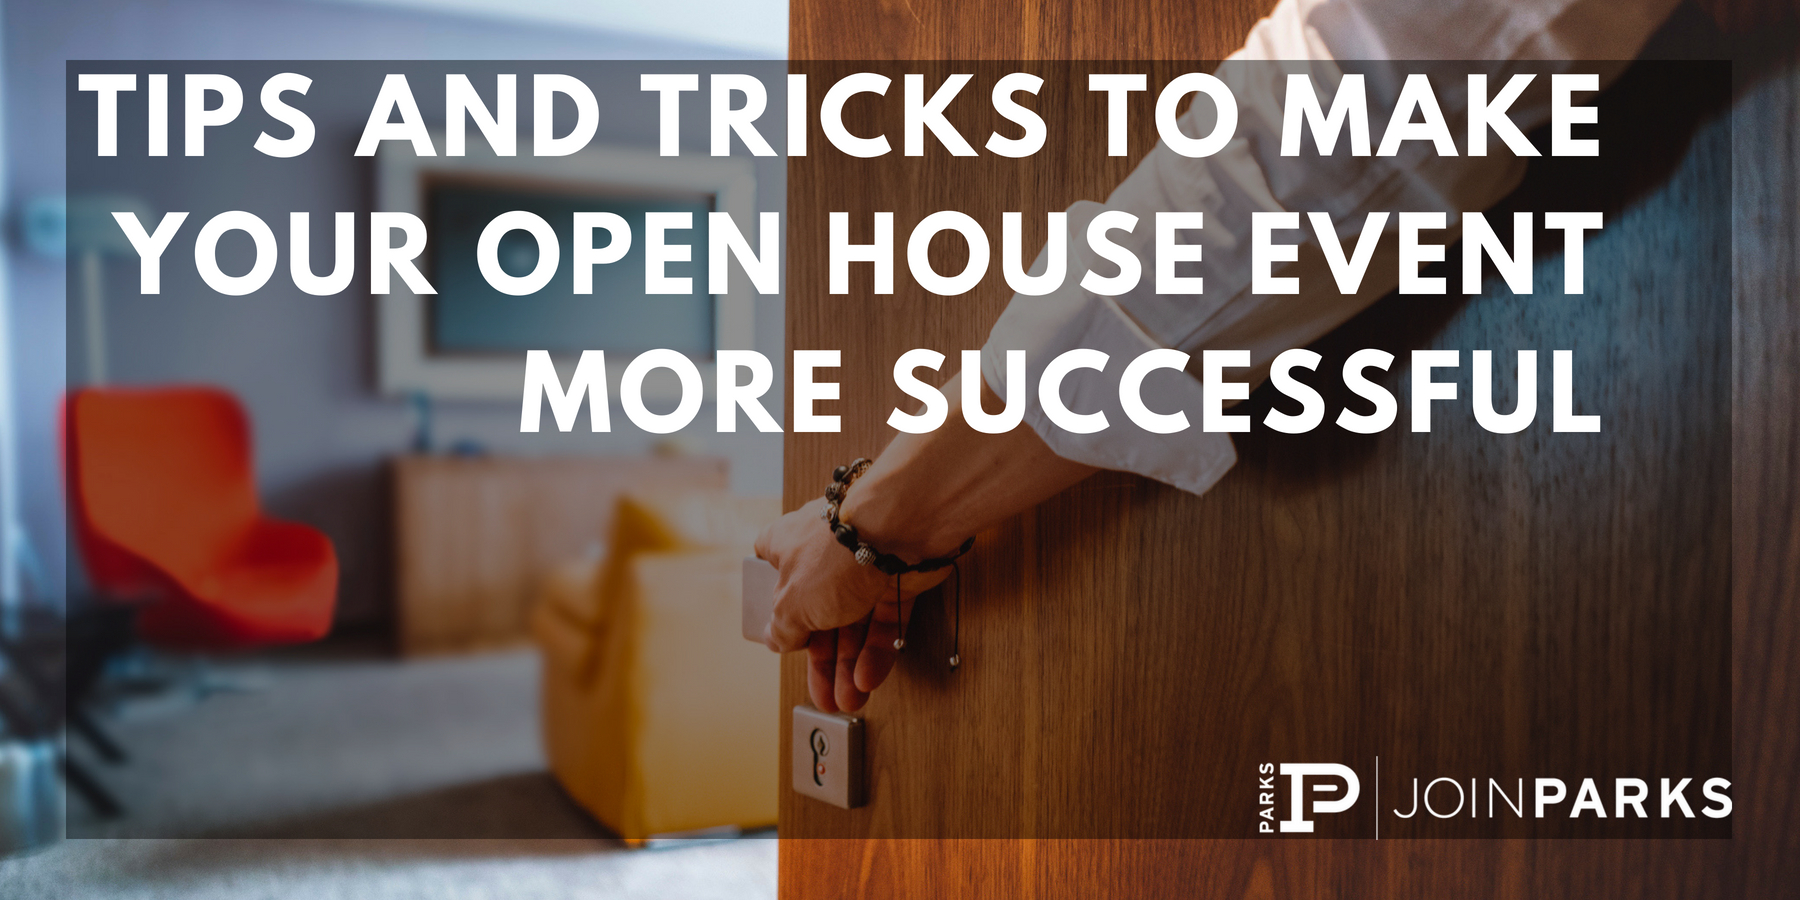 Tips and Tricks to Make Your Open House Event More Successful.jpg